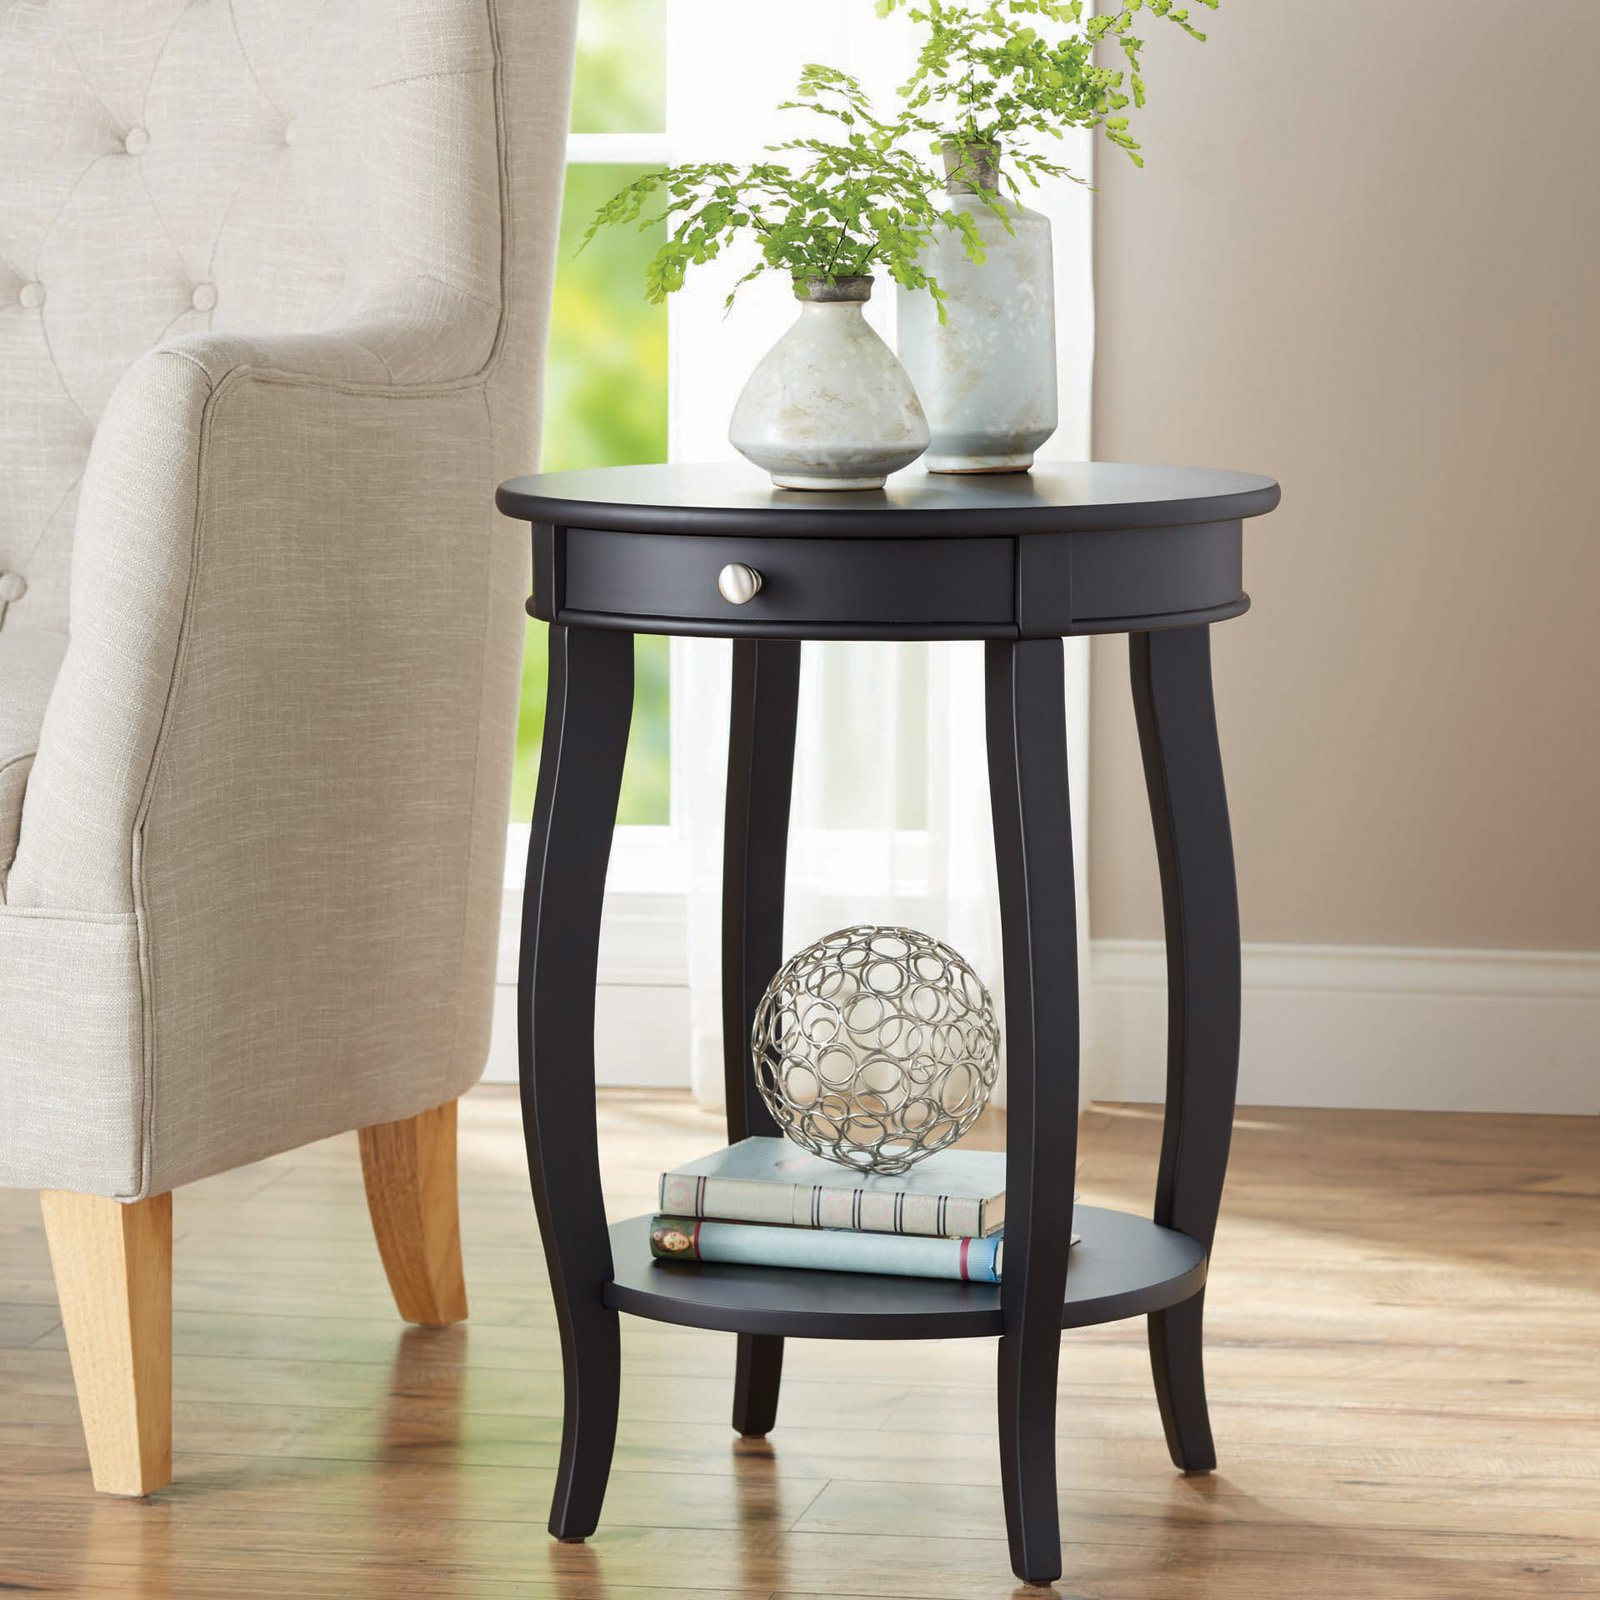 lamp good accent wood round pedestal black tables diy looking small tall base distressed white antique table engaging full size furniture console cabinet crystal glass rustic